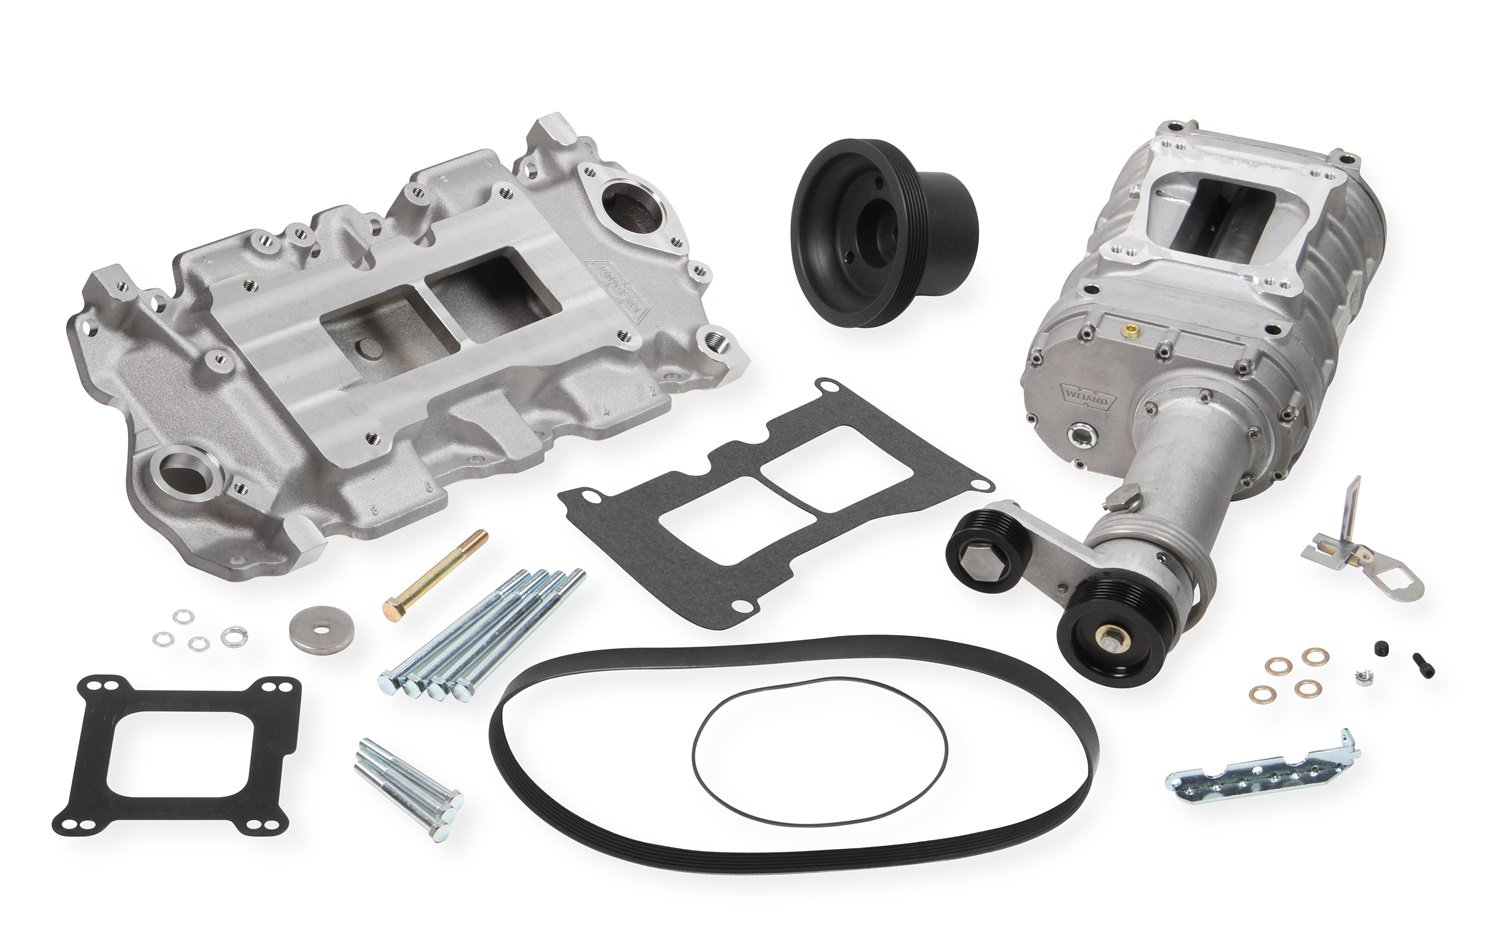 13. Weiand 6500-1 142 Pro-Street Supercharger Kit